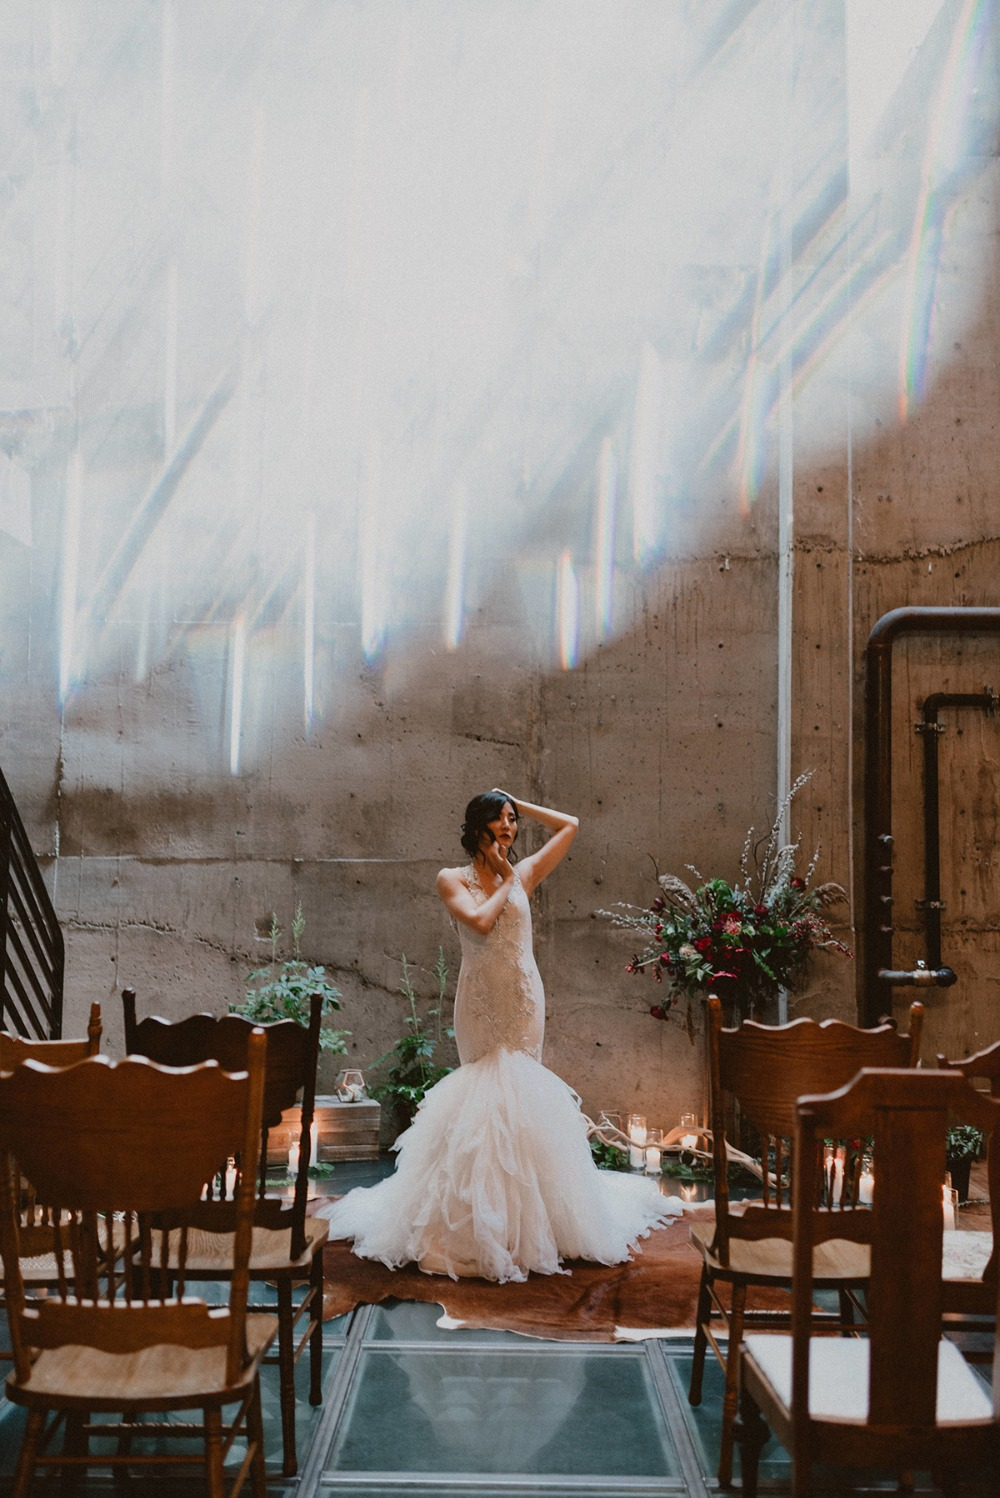 unique light and dramatic venue space